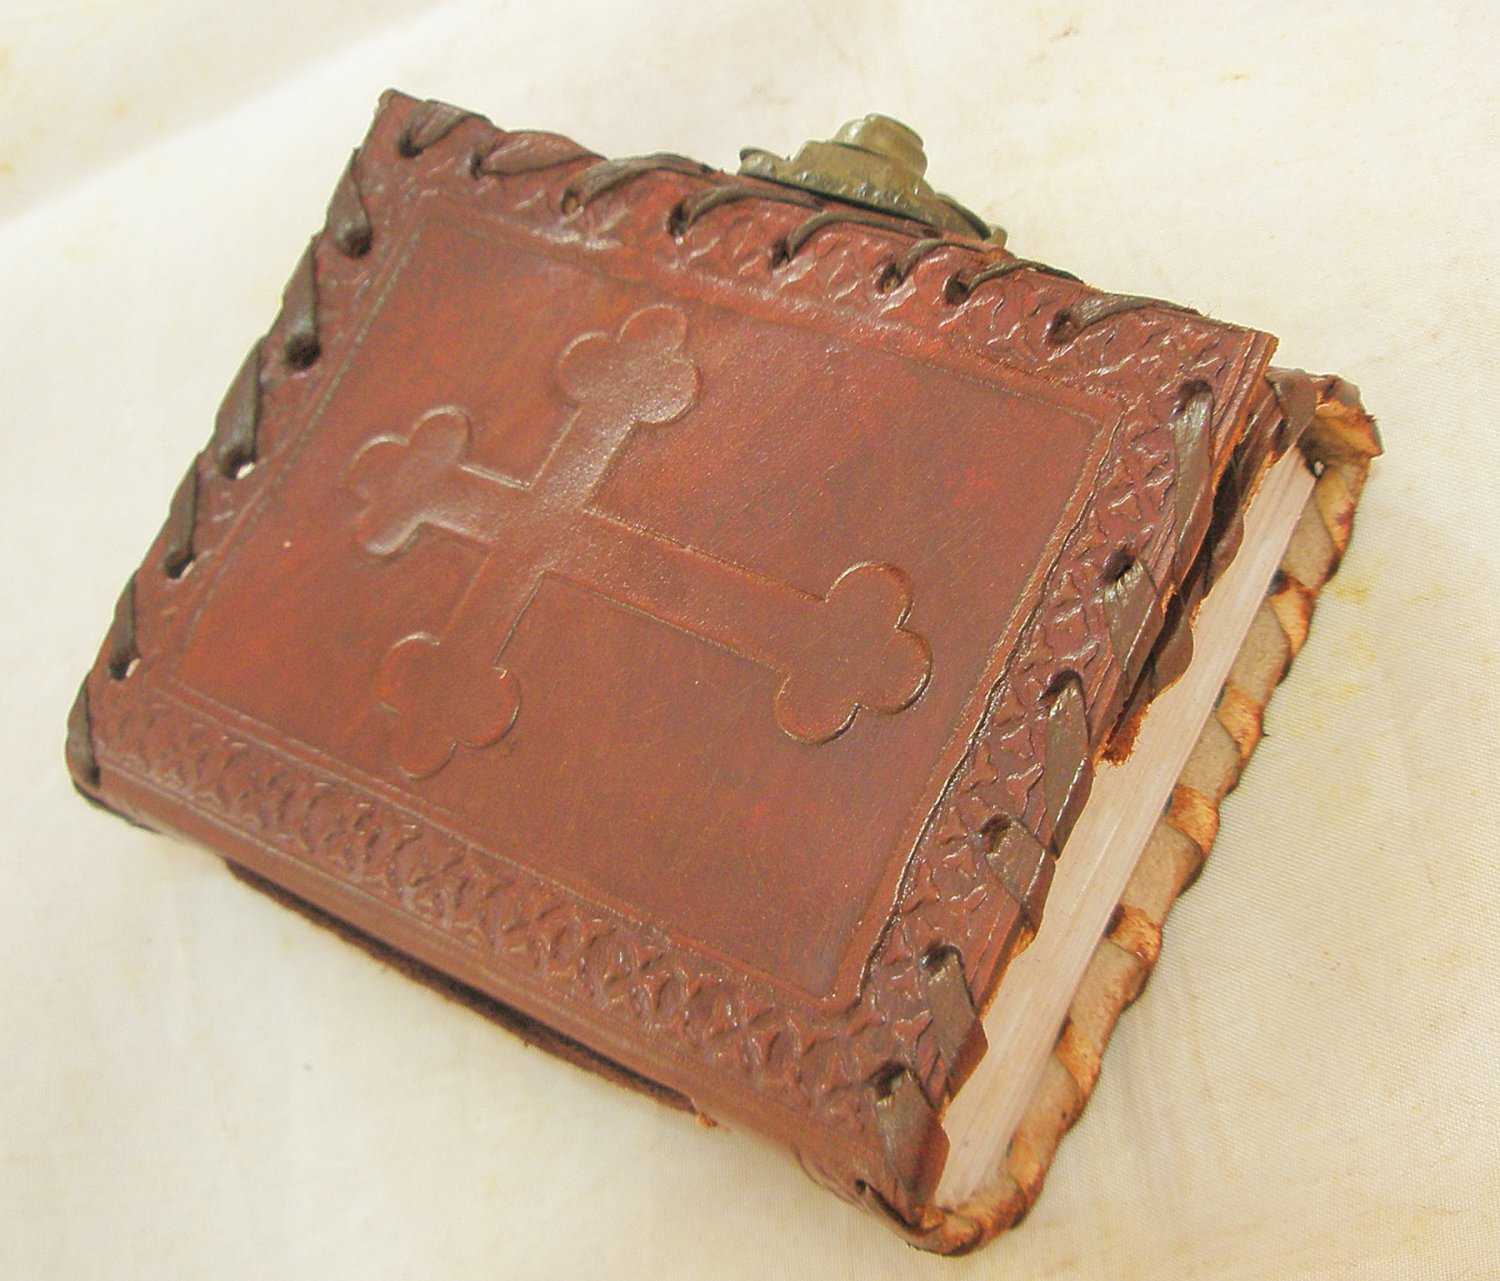 Handmade Leather Bound Mini Pocket Journal Celtic Cross Embossed Vintage Diary Blank Notebook